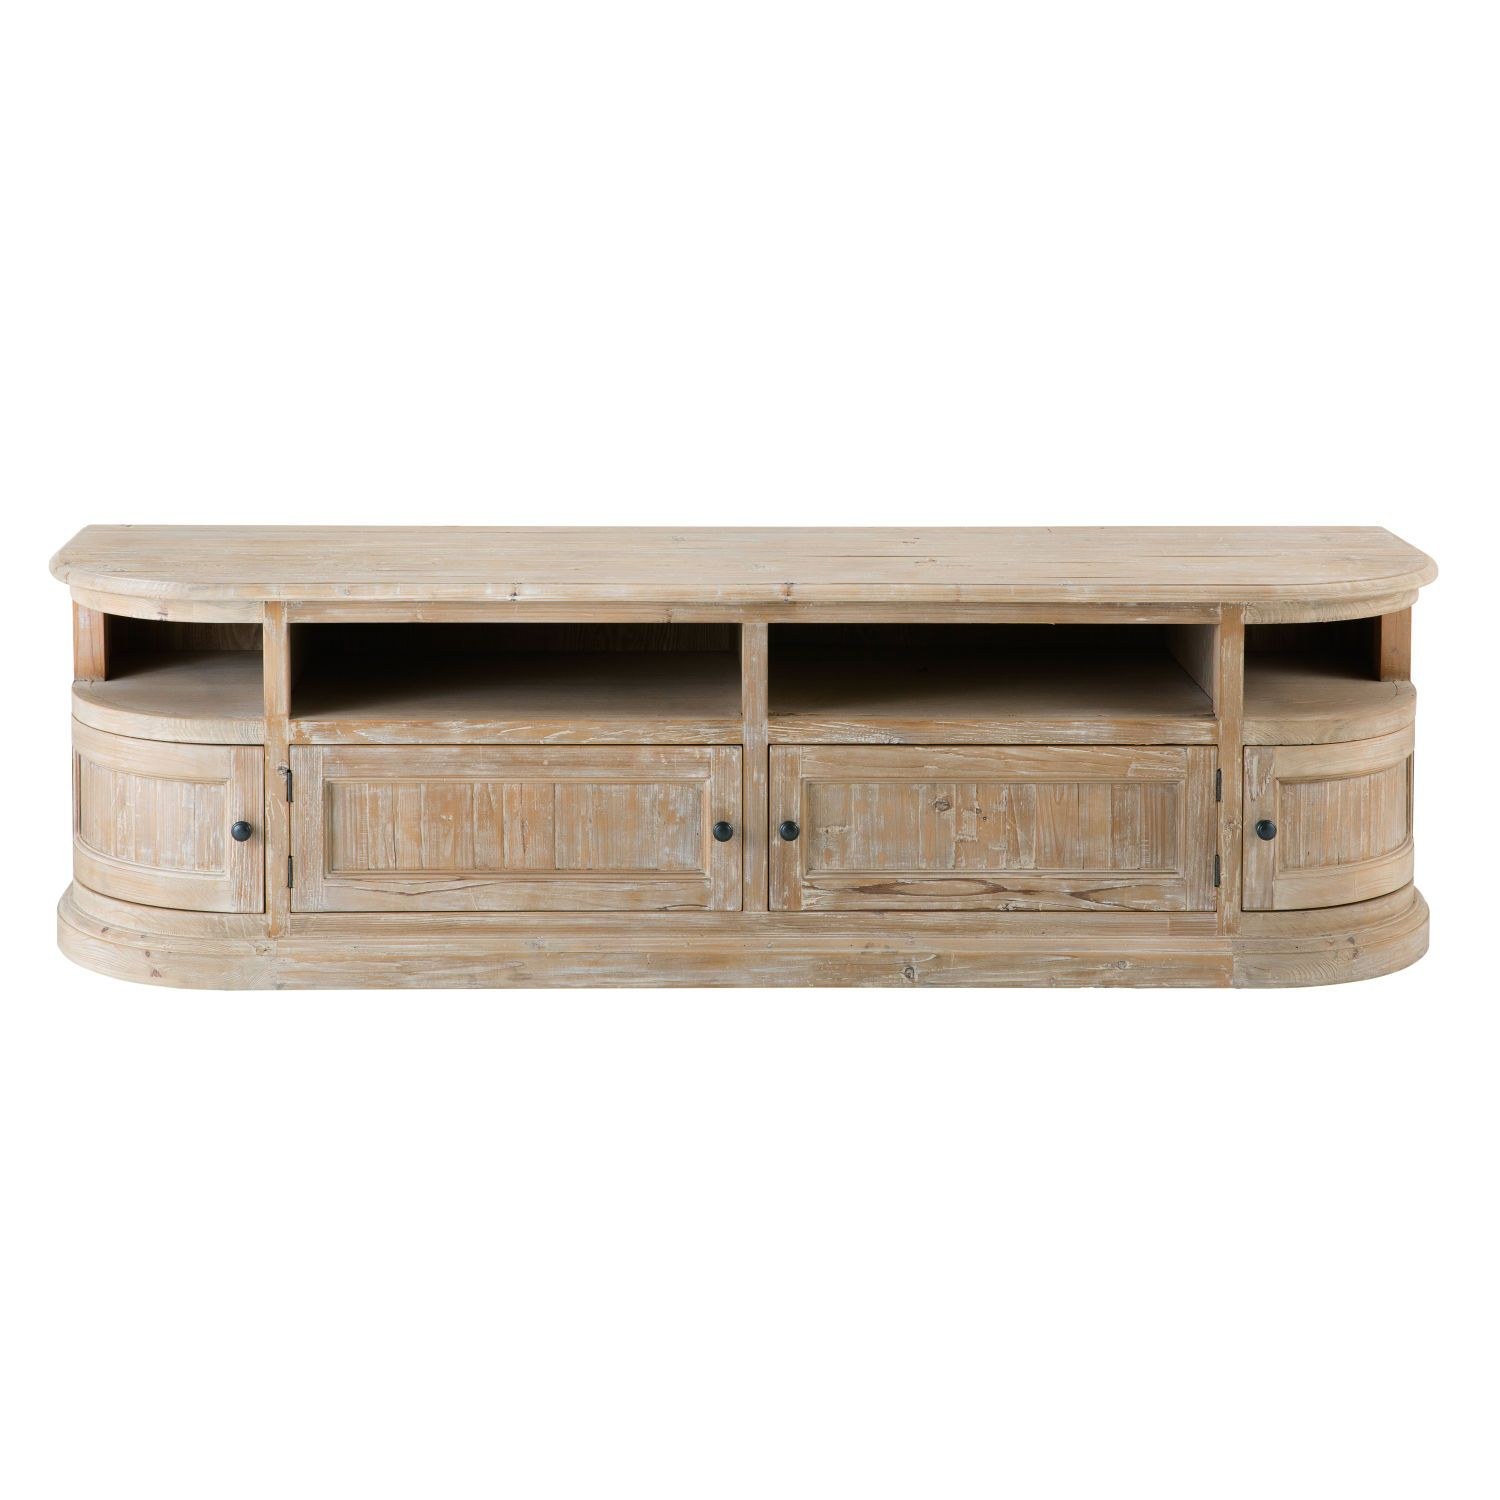 Showcase Your Screen With The Flaubert 4 Door Tv Stand Made From Recycled Pine With A Slightly Limewashed Finish It Will Add An Ele Porta Tv Mobili Tv Mobili